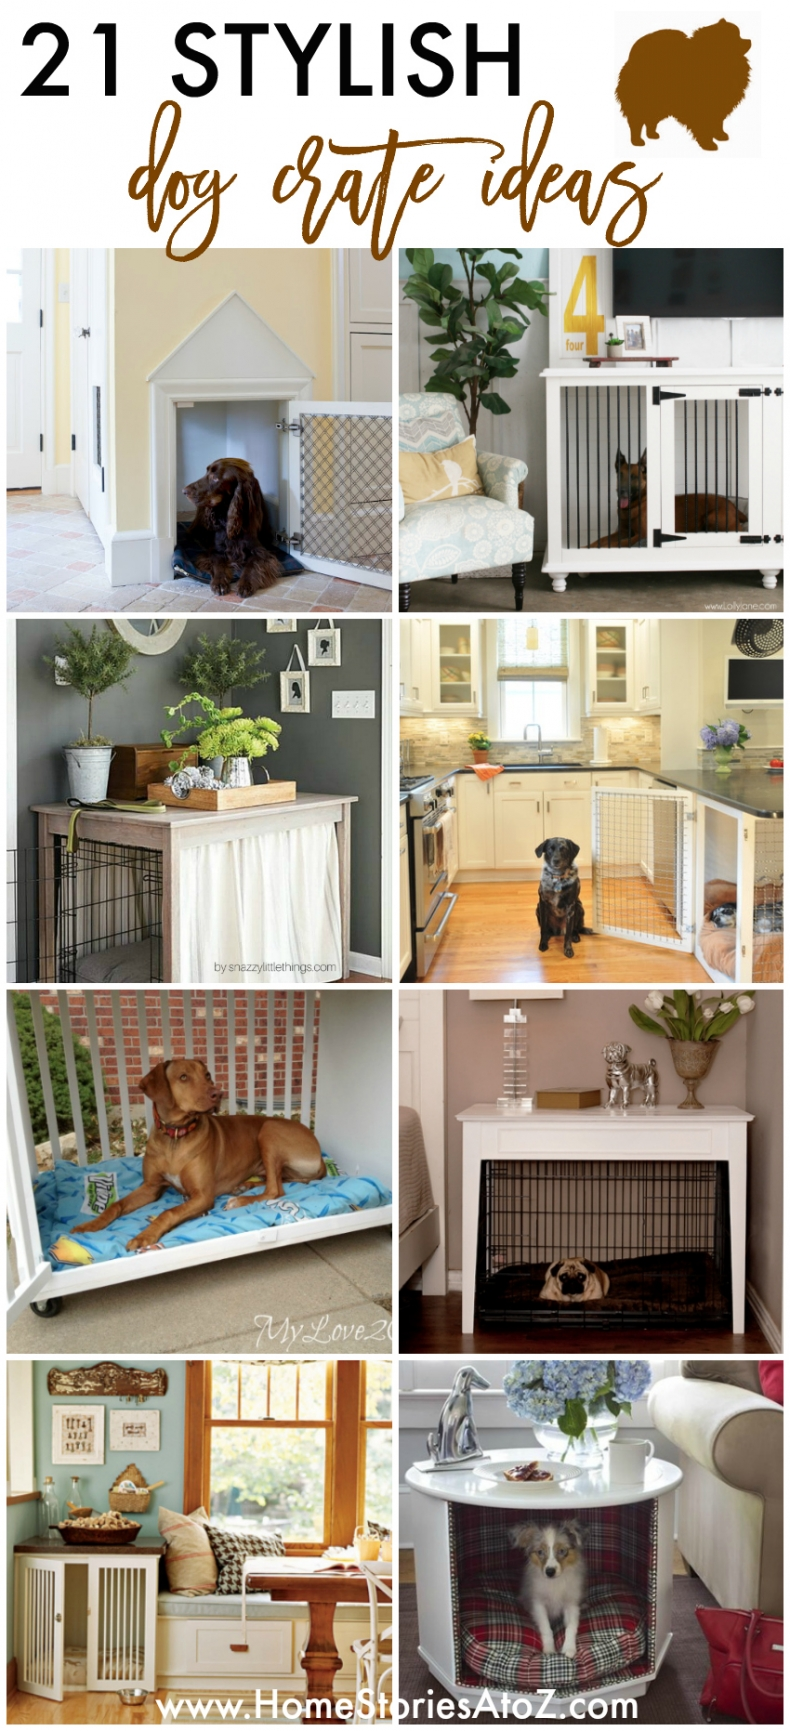 21 Stylish Dog Crate Ideas - Home Stories A to Z